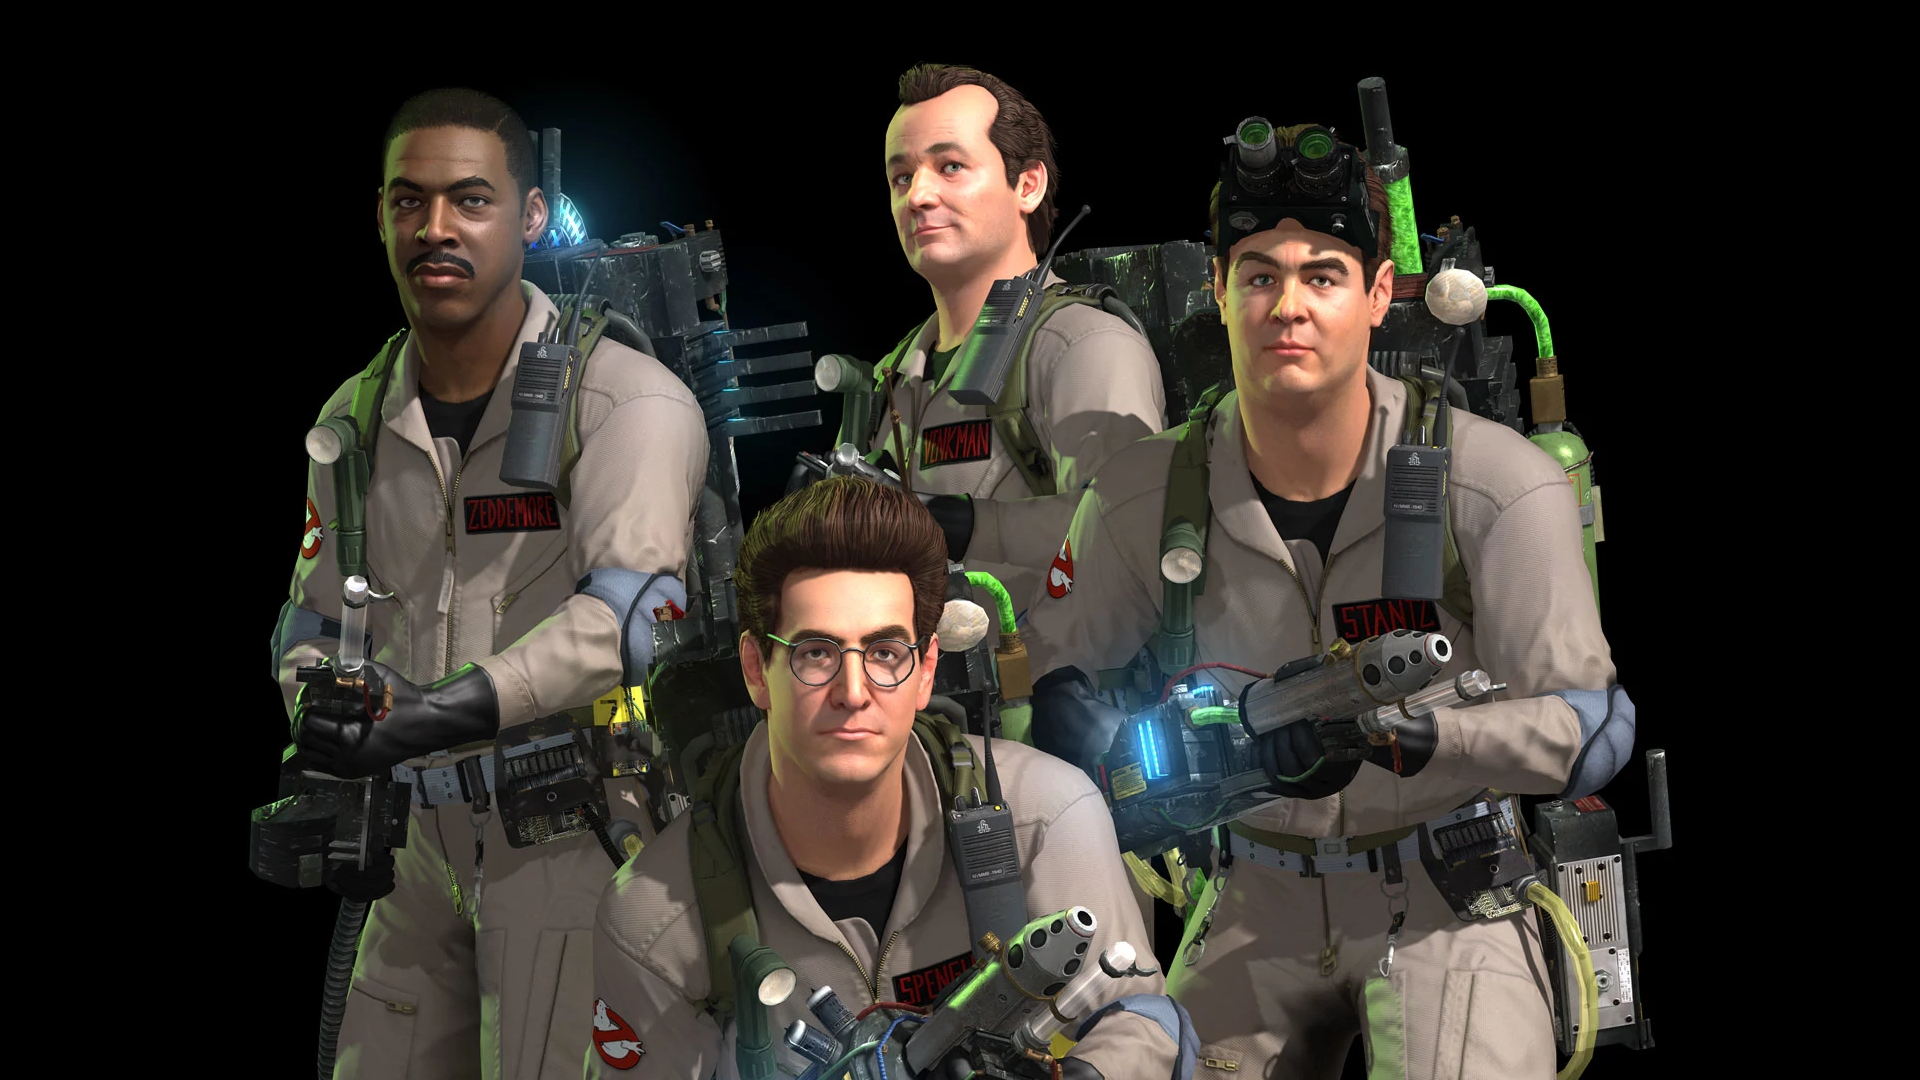 Ghostbusters remastered release date